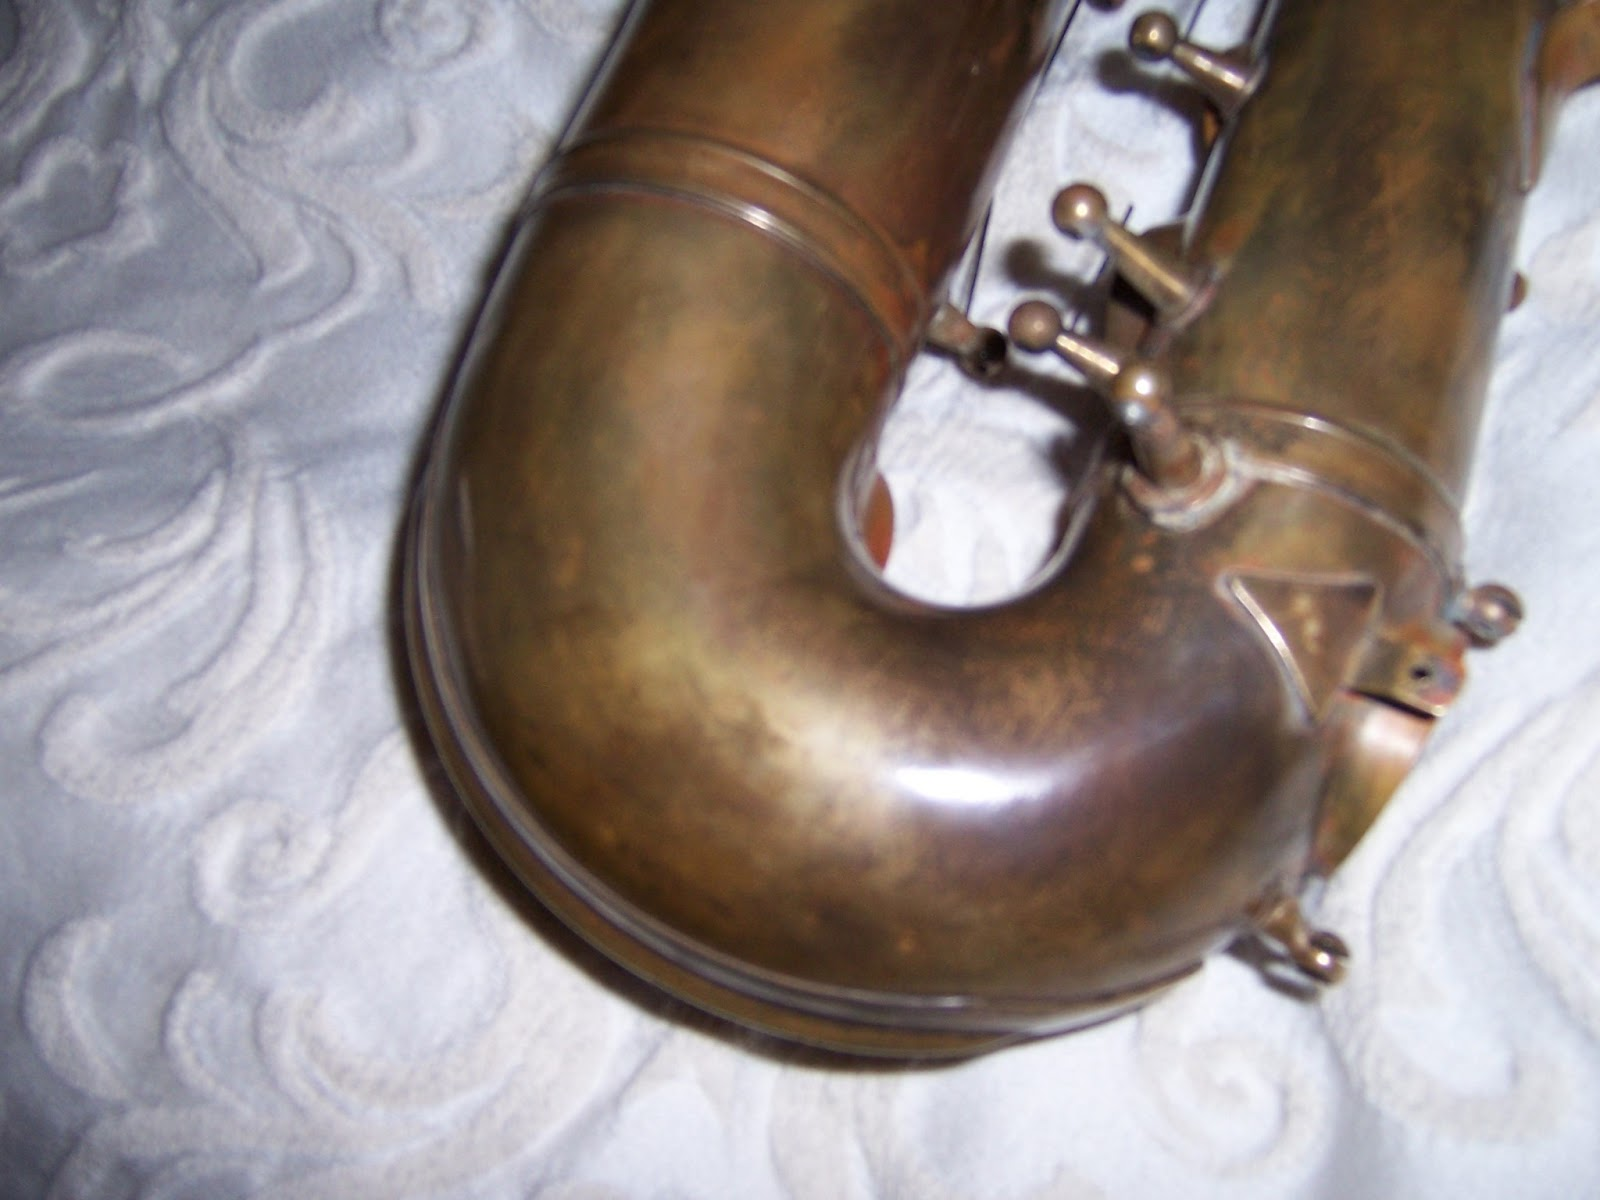 stuff sax removing lacquer from a brass saxophone and applying a patina. Black Bedroom Furniture Sets. Home Design Ideas